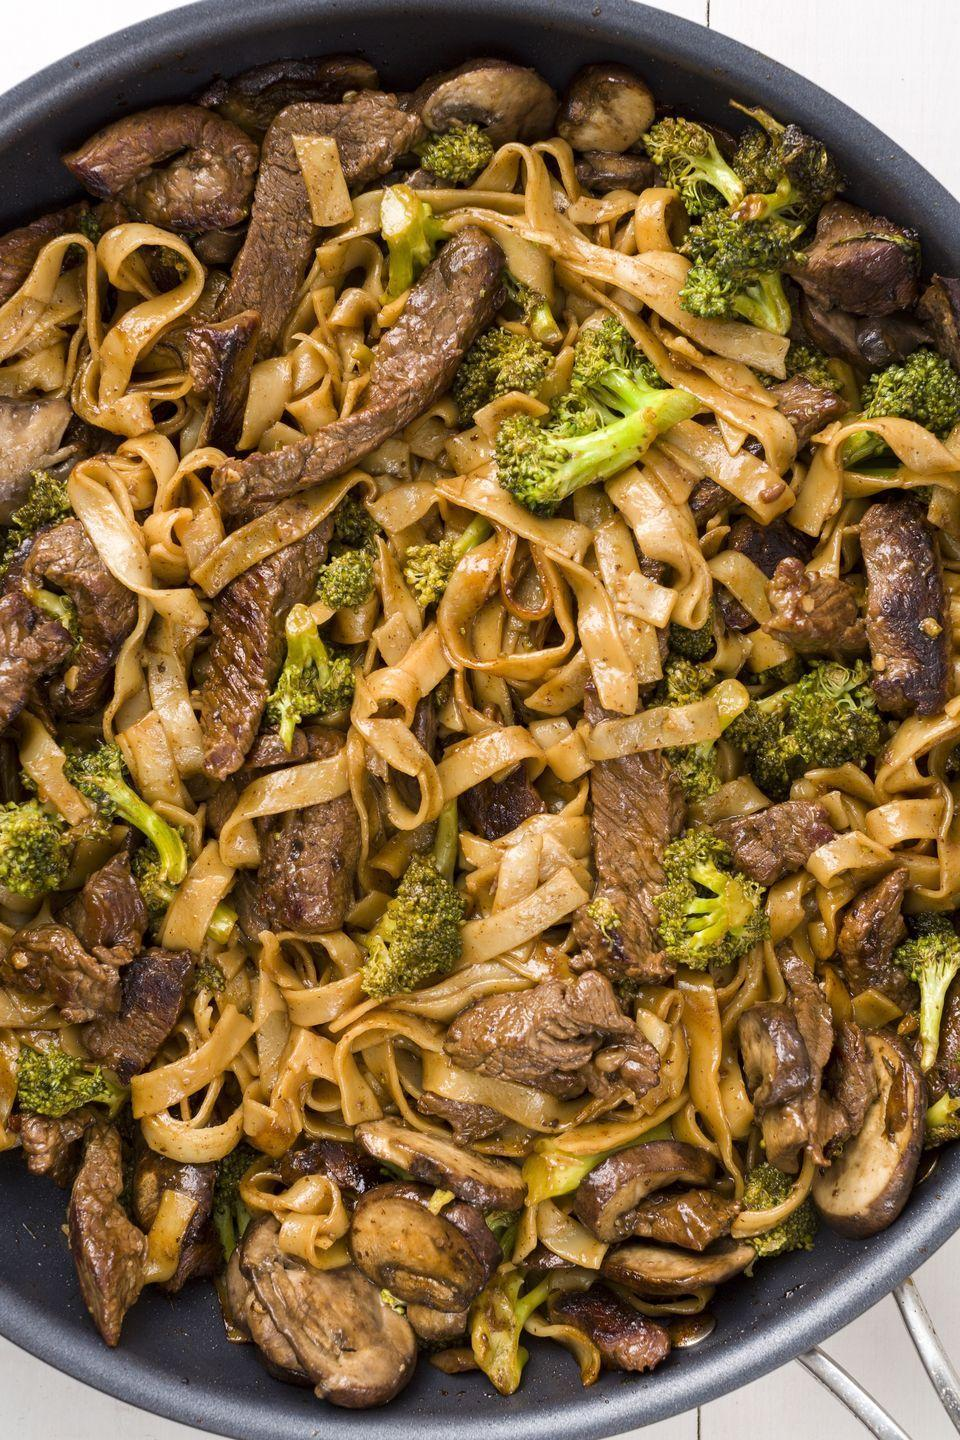 "<p>With soy sauce-infused flank steak and broccoli, these rice noodles are an amazing dinner option.</p><p>Get the recipe from <a href=""https://www.delish.com/cooking/recipe-ideas/recipes/a45477/beef-and-broccoli-noodles-recipe/"" rel=""nofollow noopener"" target=""_blank"" data-ylk=""slk:Delish"" class=""link rapid-noclick-resp"">Delish</a>.</p>"